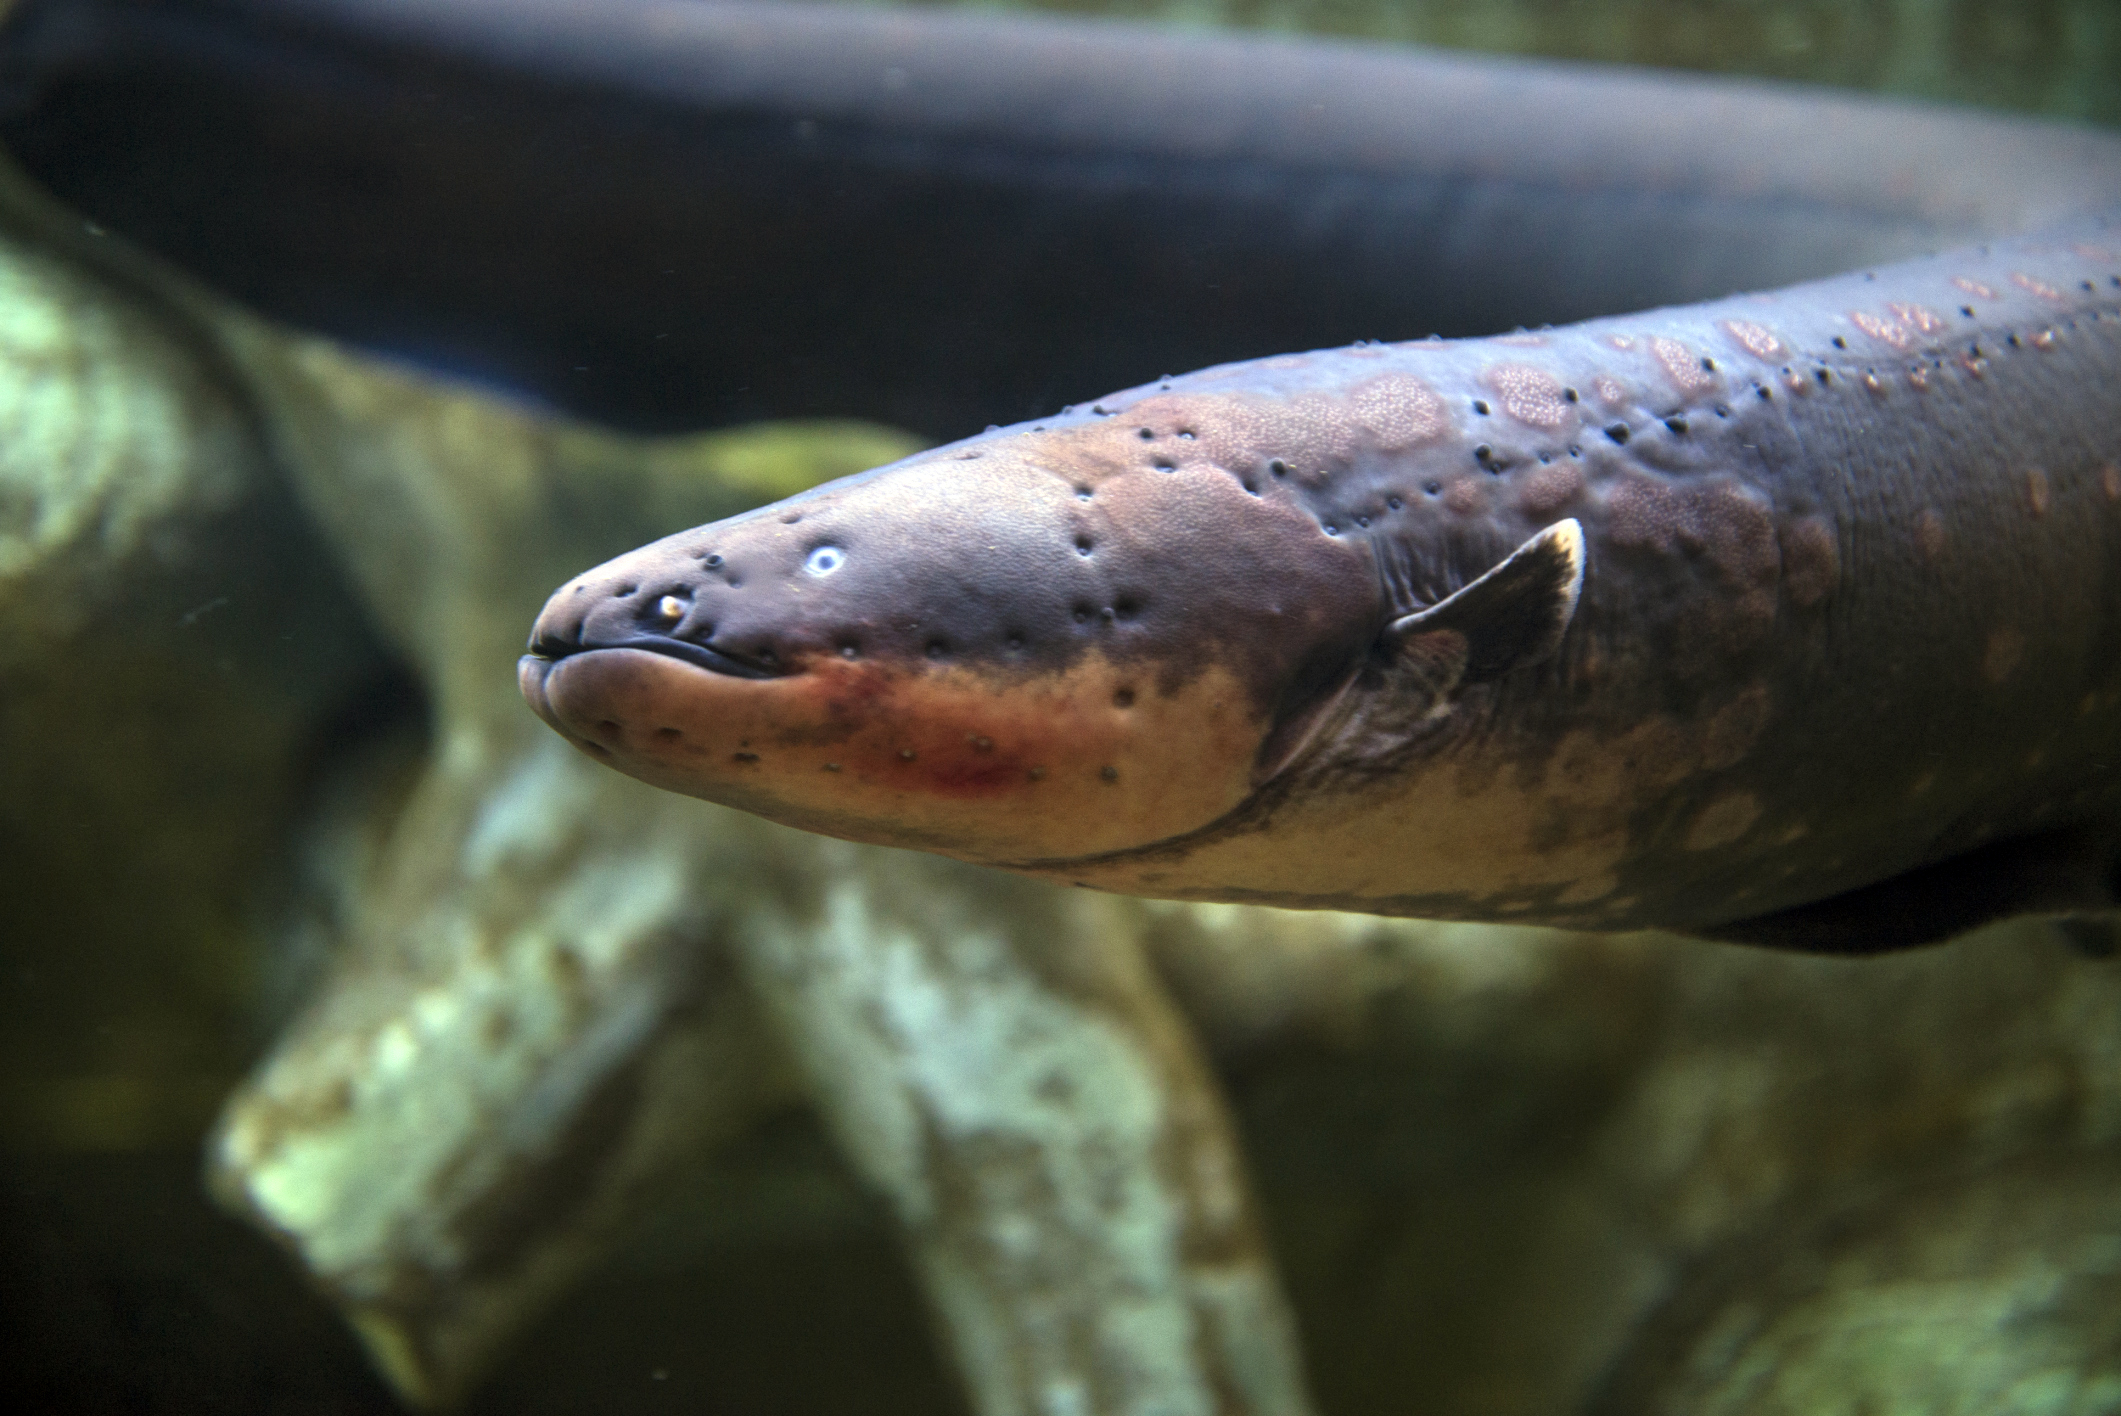 Can electric eels kill you? | HowStuffWorks